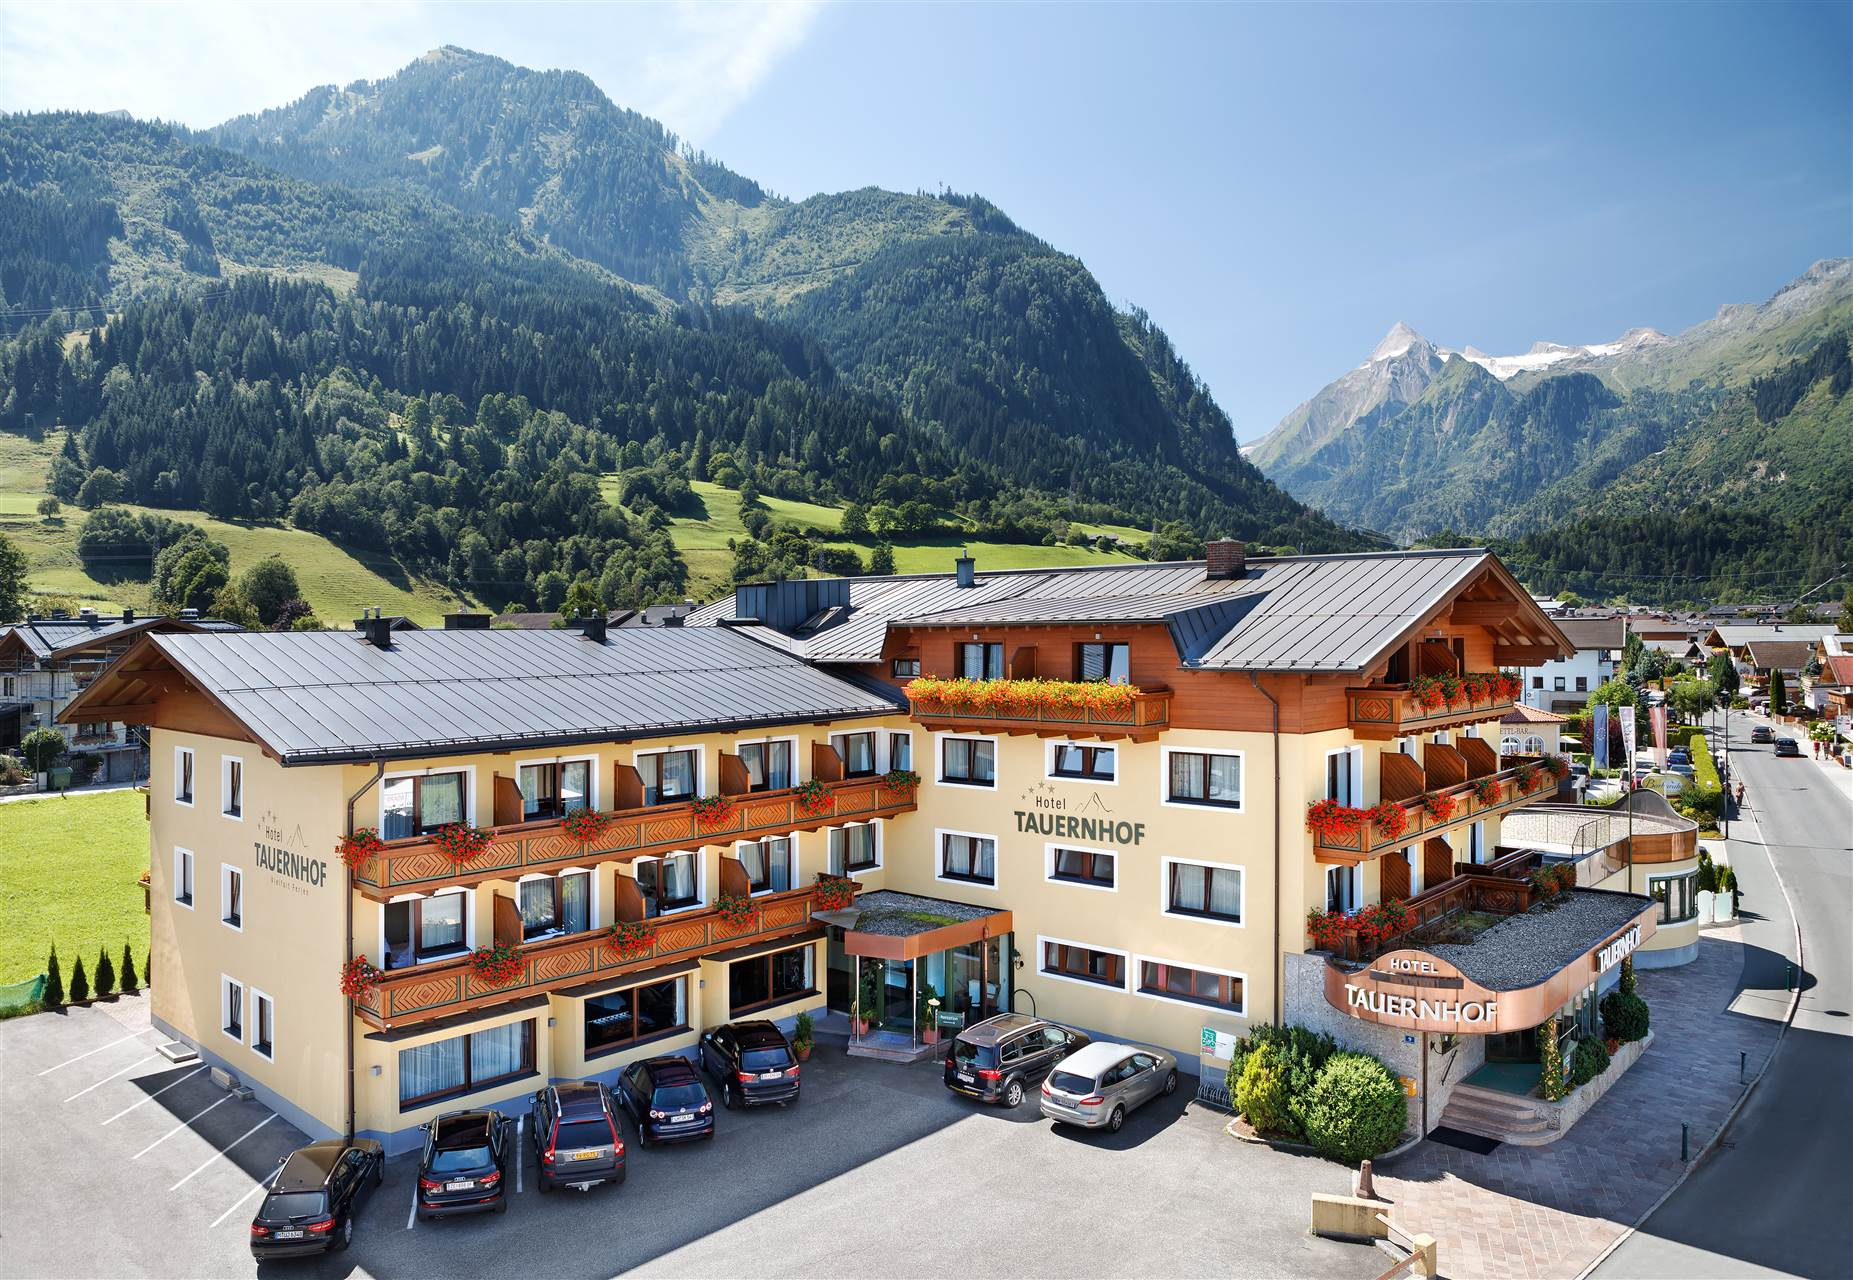 Building view of the Hotel Tauernhof in Kaprun